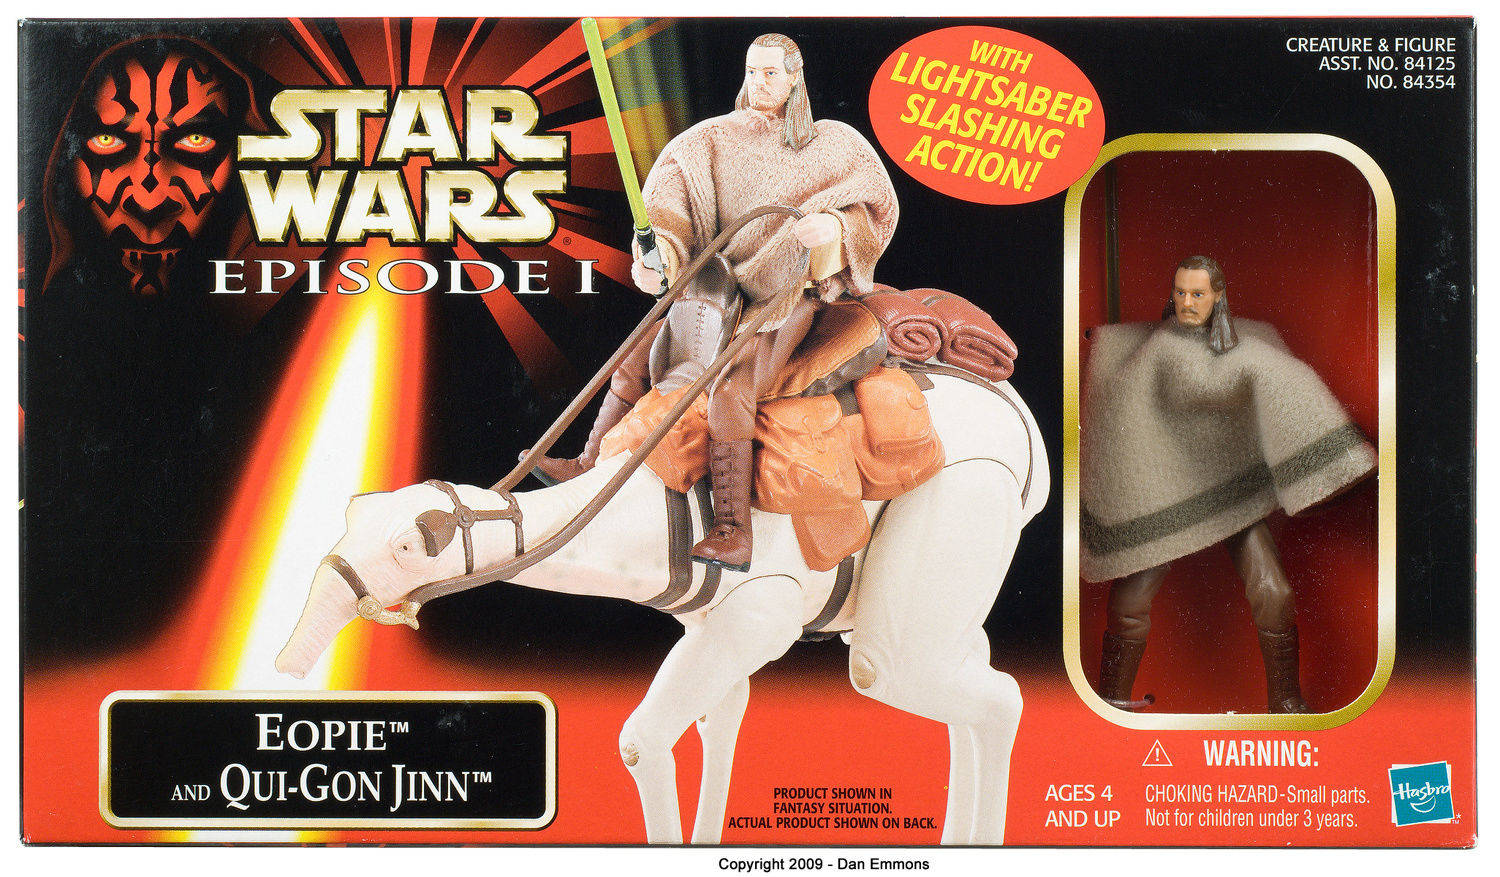 Eopie with Qui-Gon Jinn -